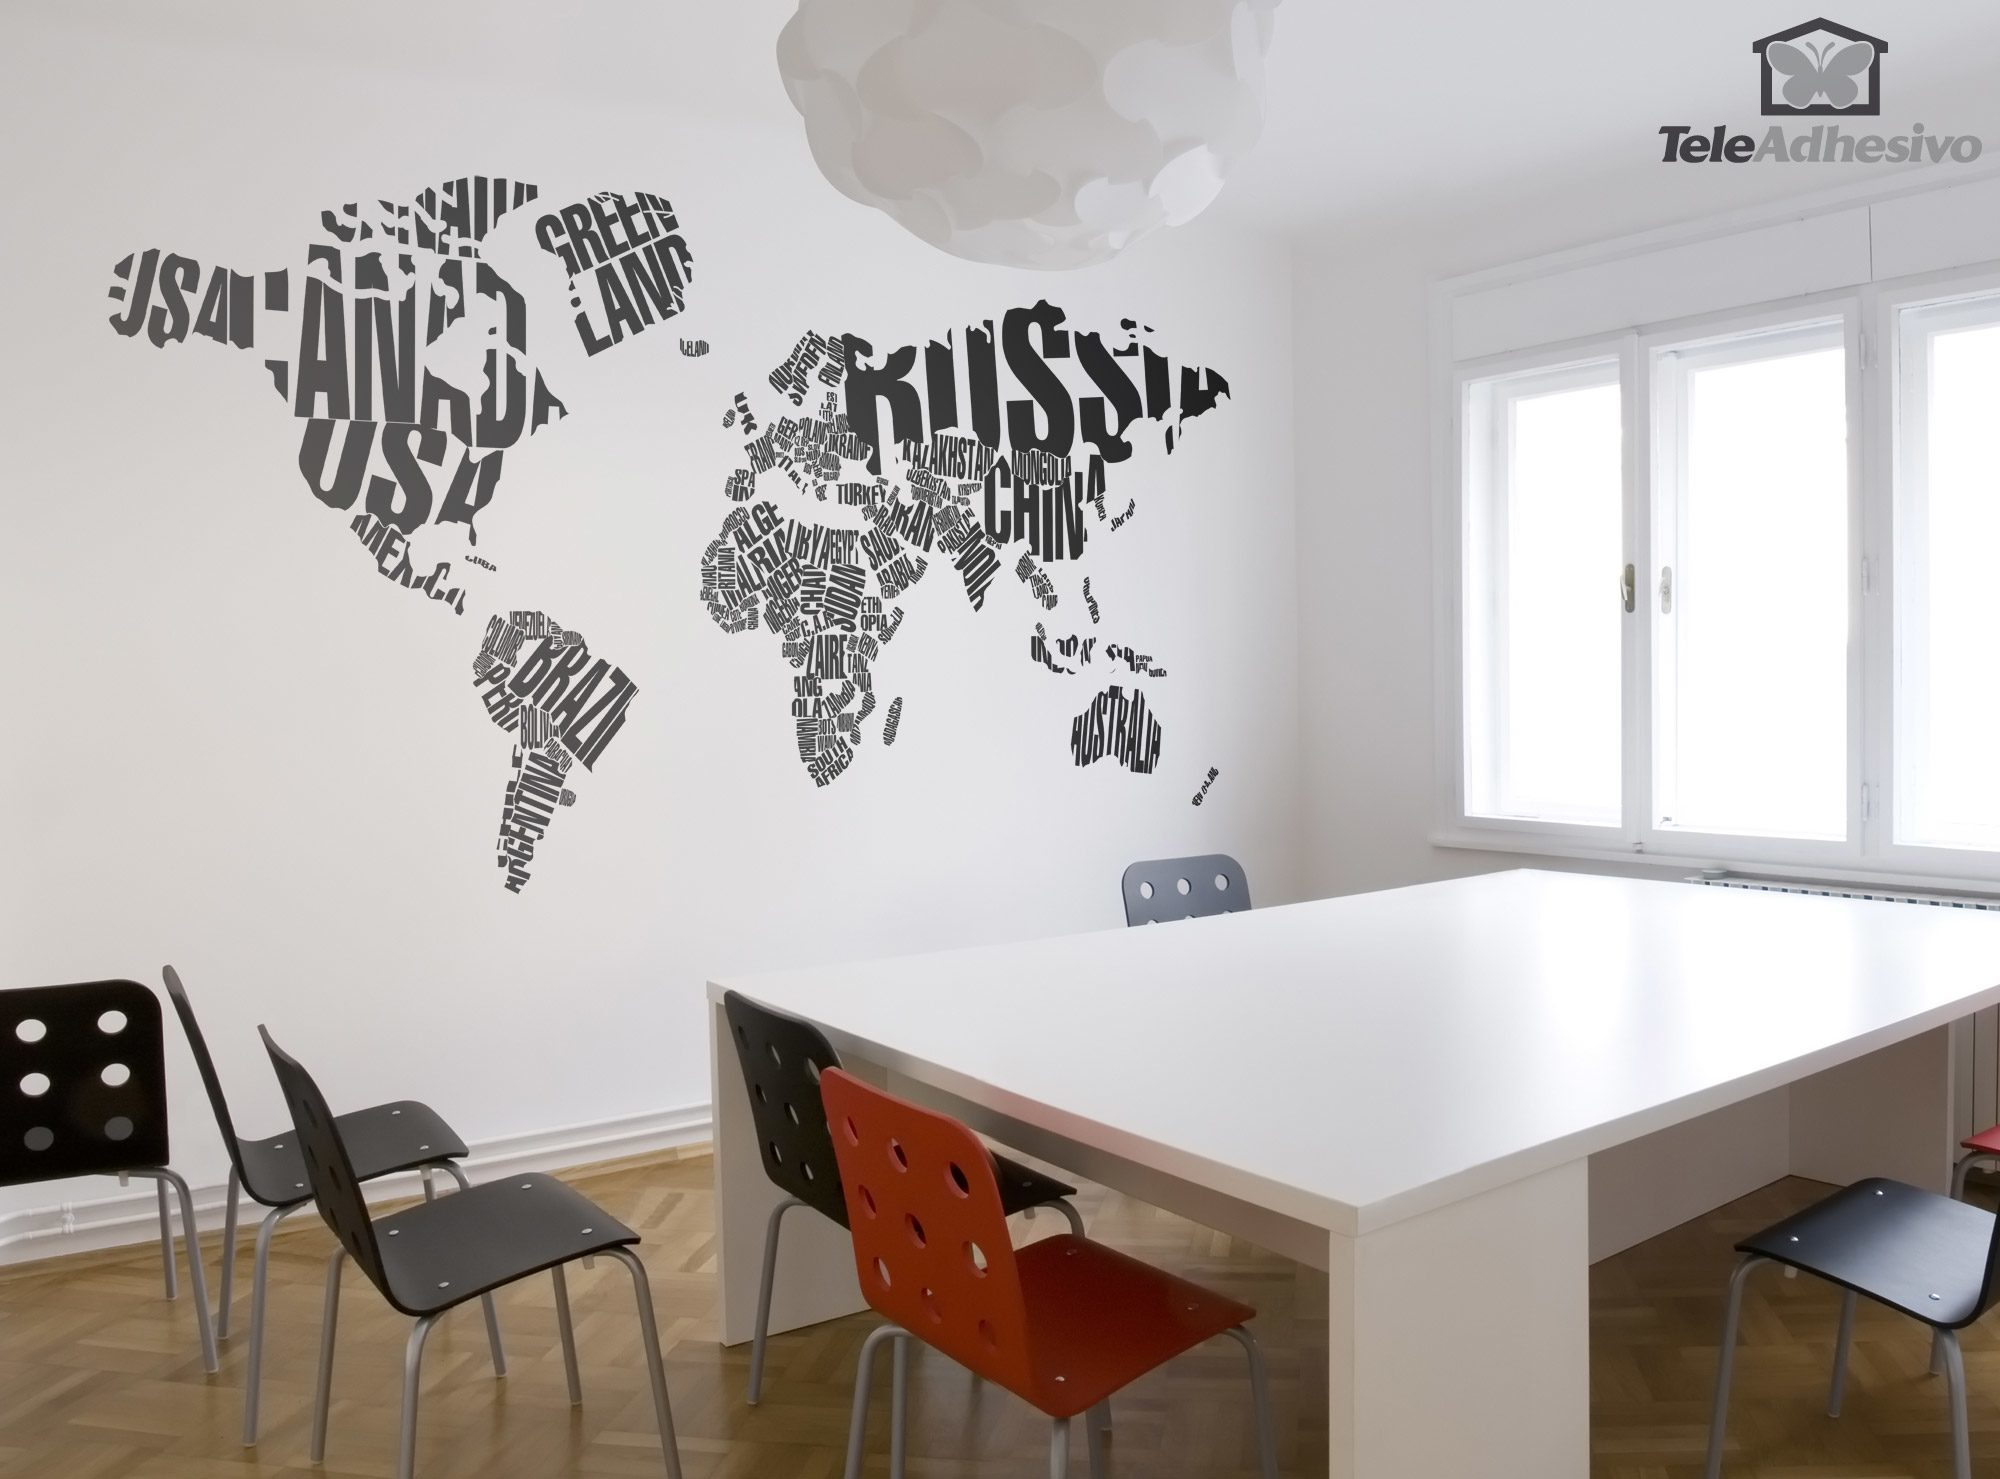 sticker mural d 39 une carte de style typographique. Black Bedroom Furniture Sets. Home Design Ideas